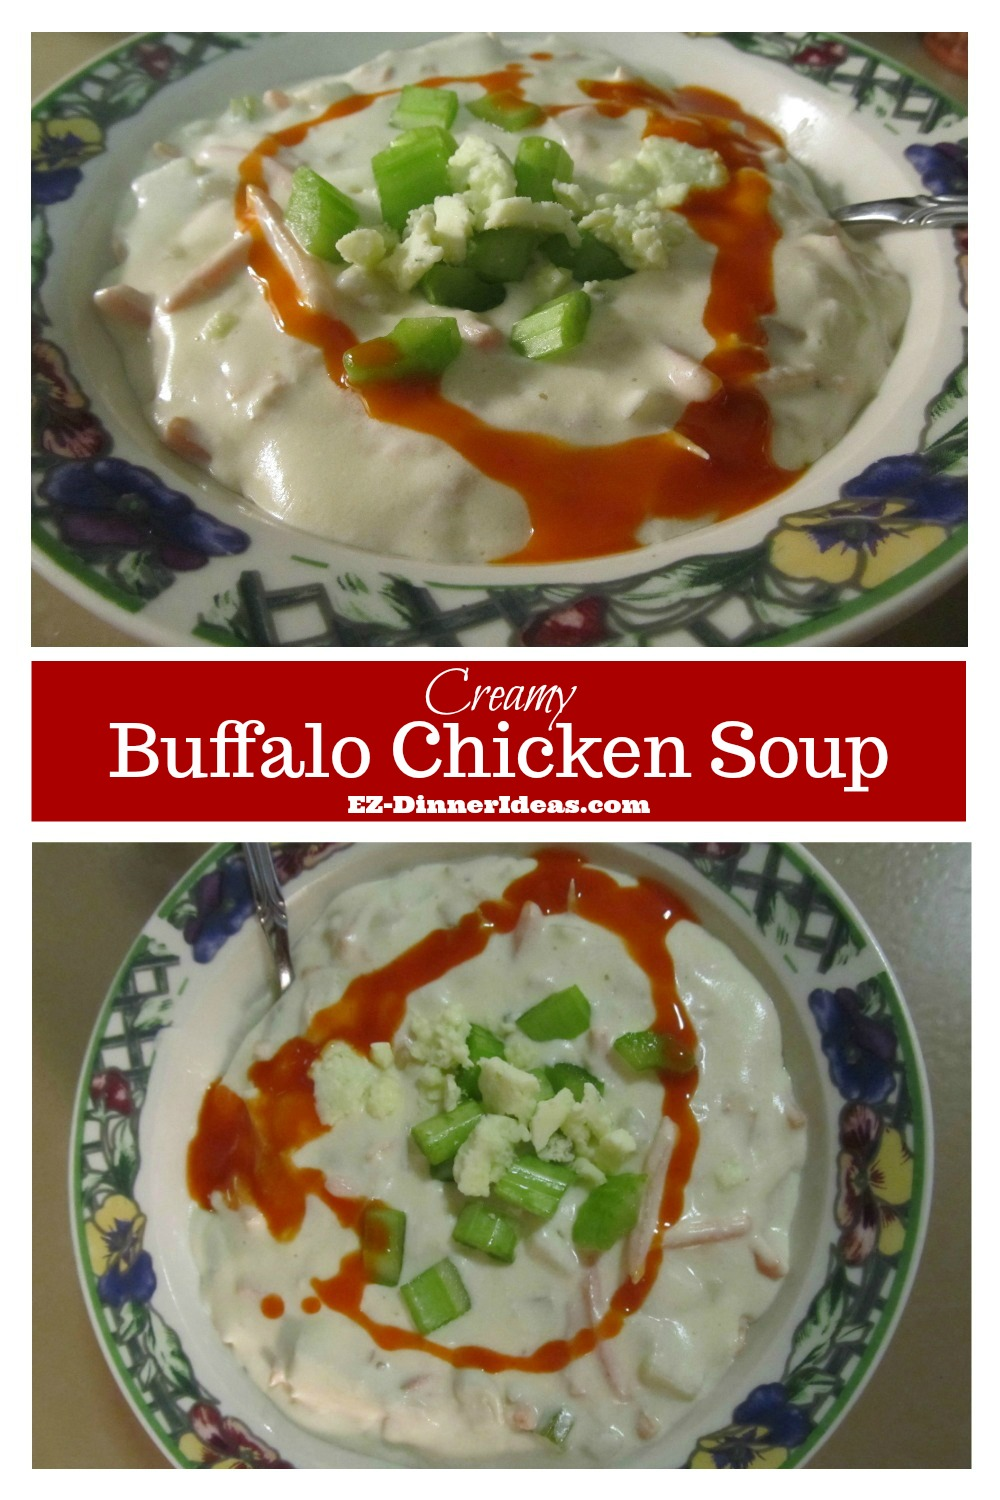 This creamy chicken soup recipe kicks up a notch.  If you love buffalo chicken, this is a perfect couch potato recipe for your comfort.